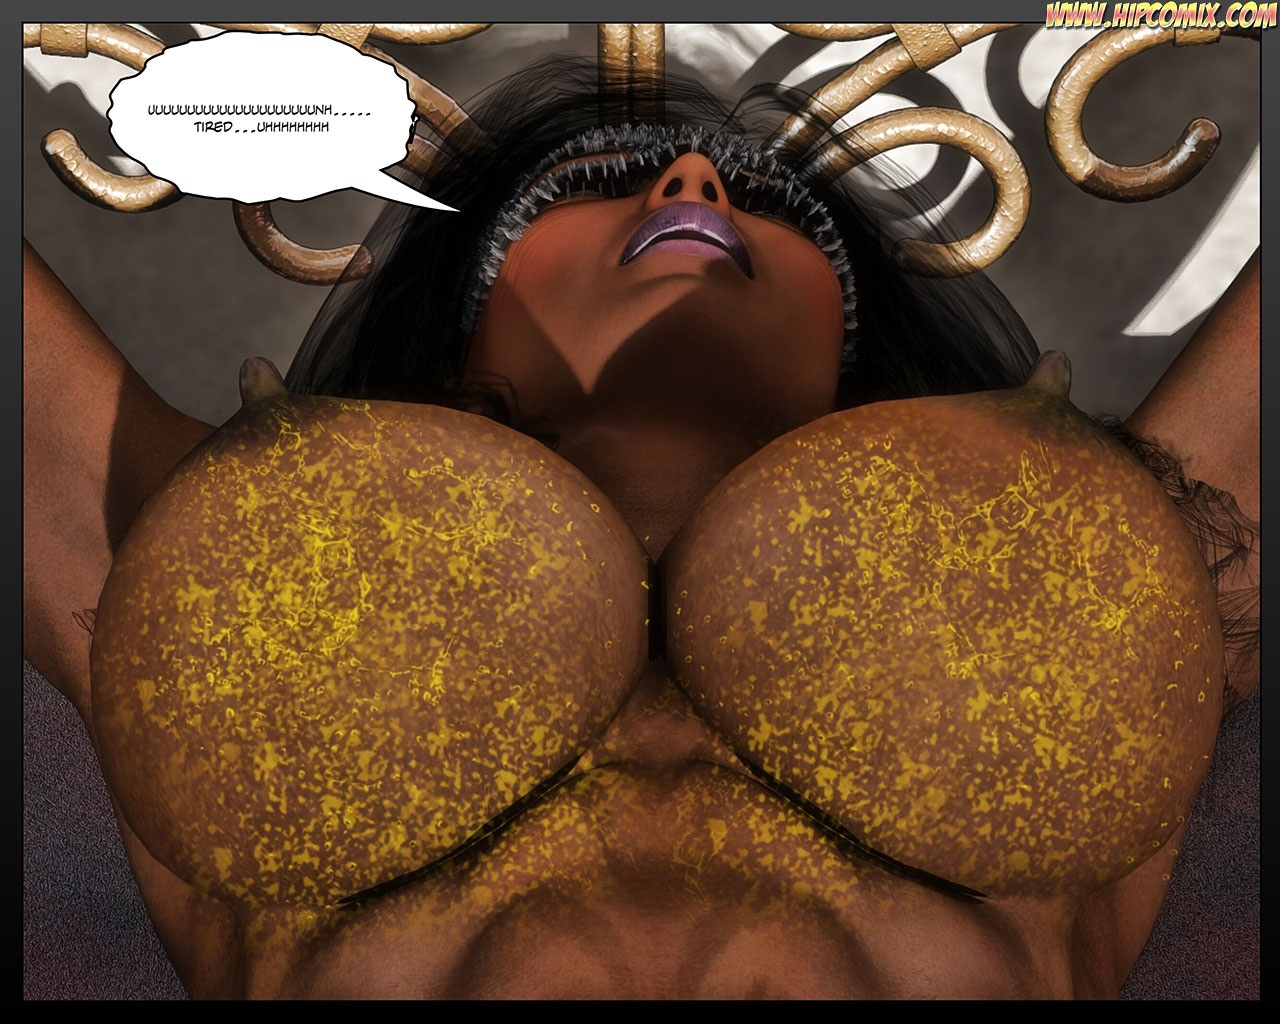 Panther-Girl-24 14 free sex comic